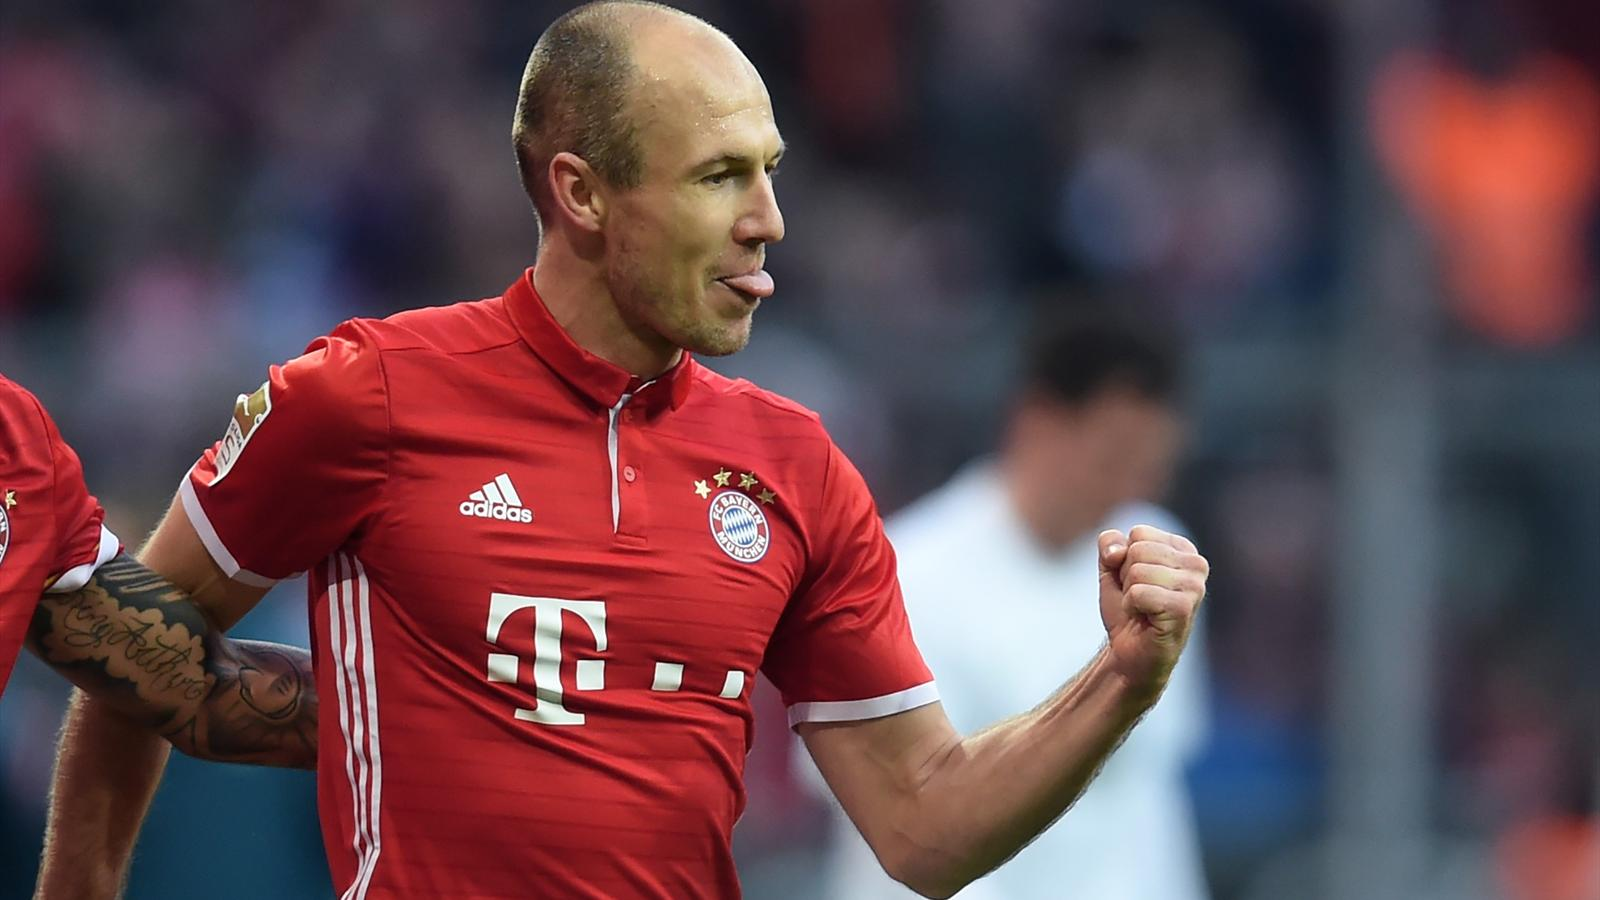 arjen robben signs bayern munich contract extension bundesliga 2016 2017 football. Black Bedroom Furniture Sets. Home Design Ideas